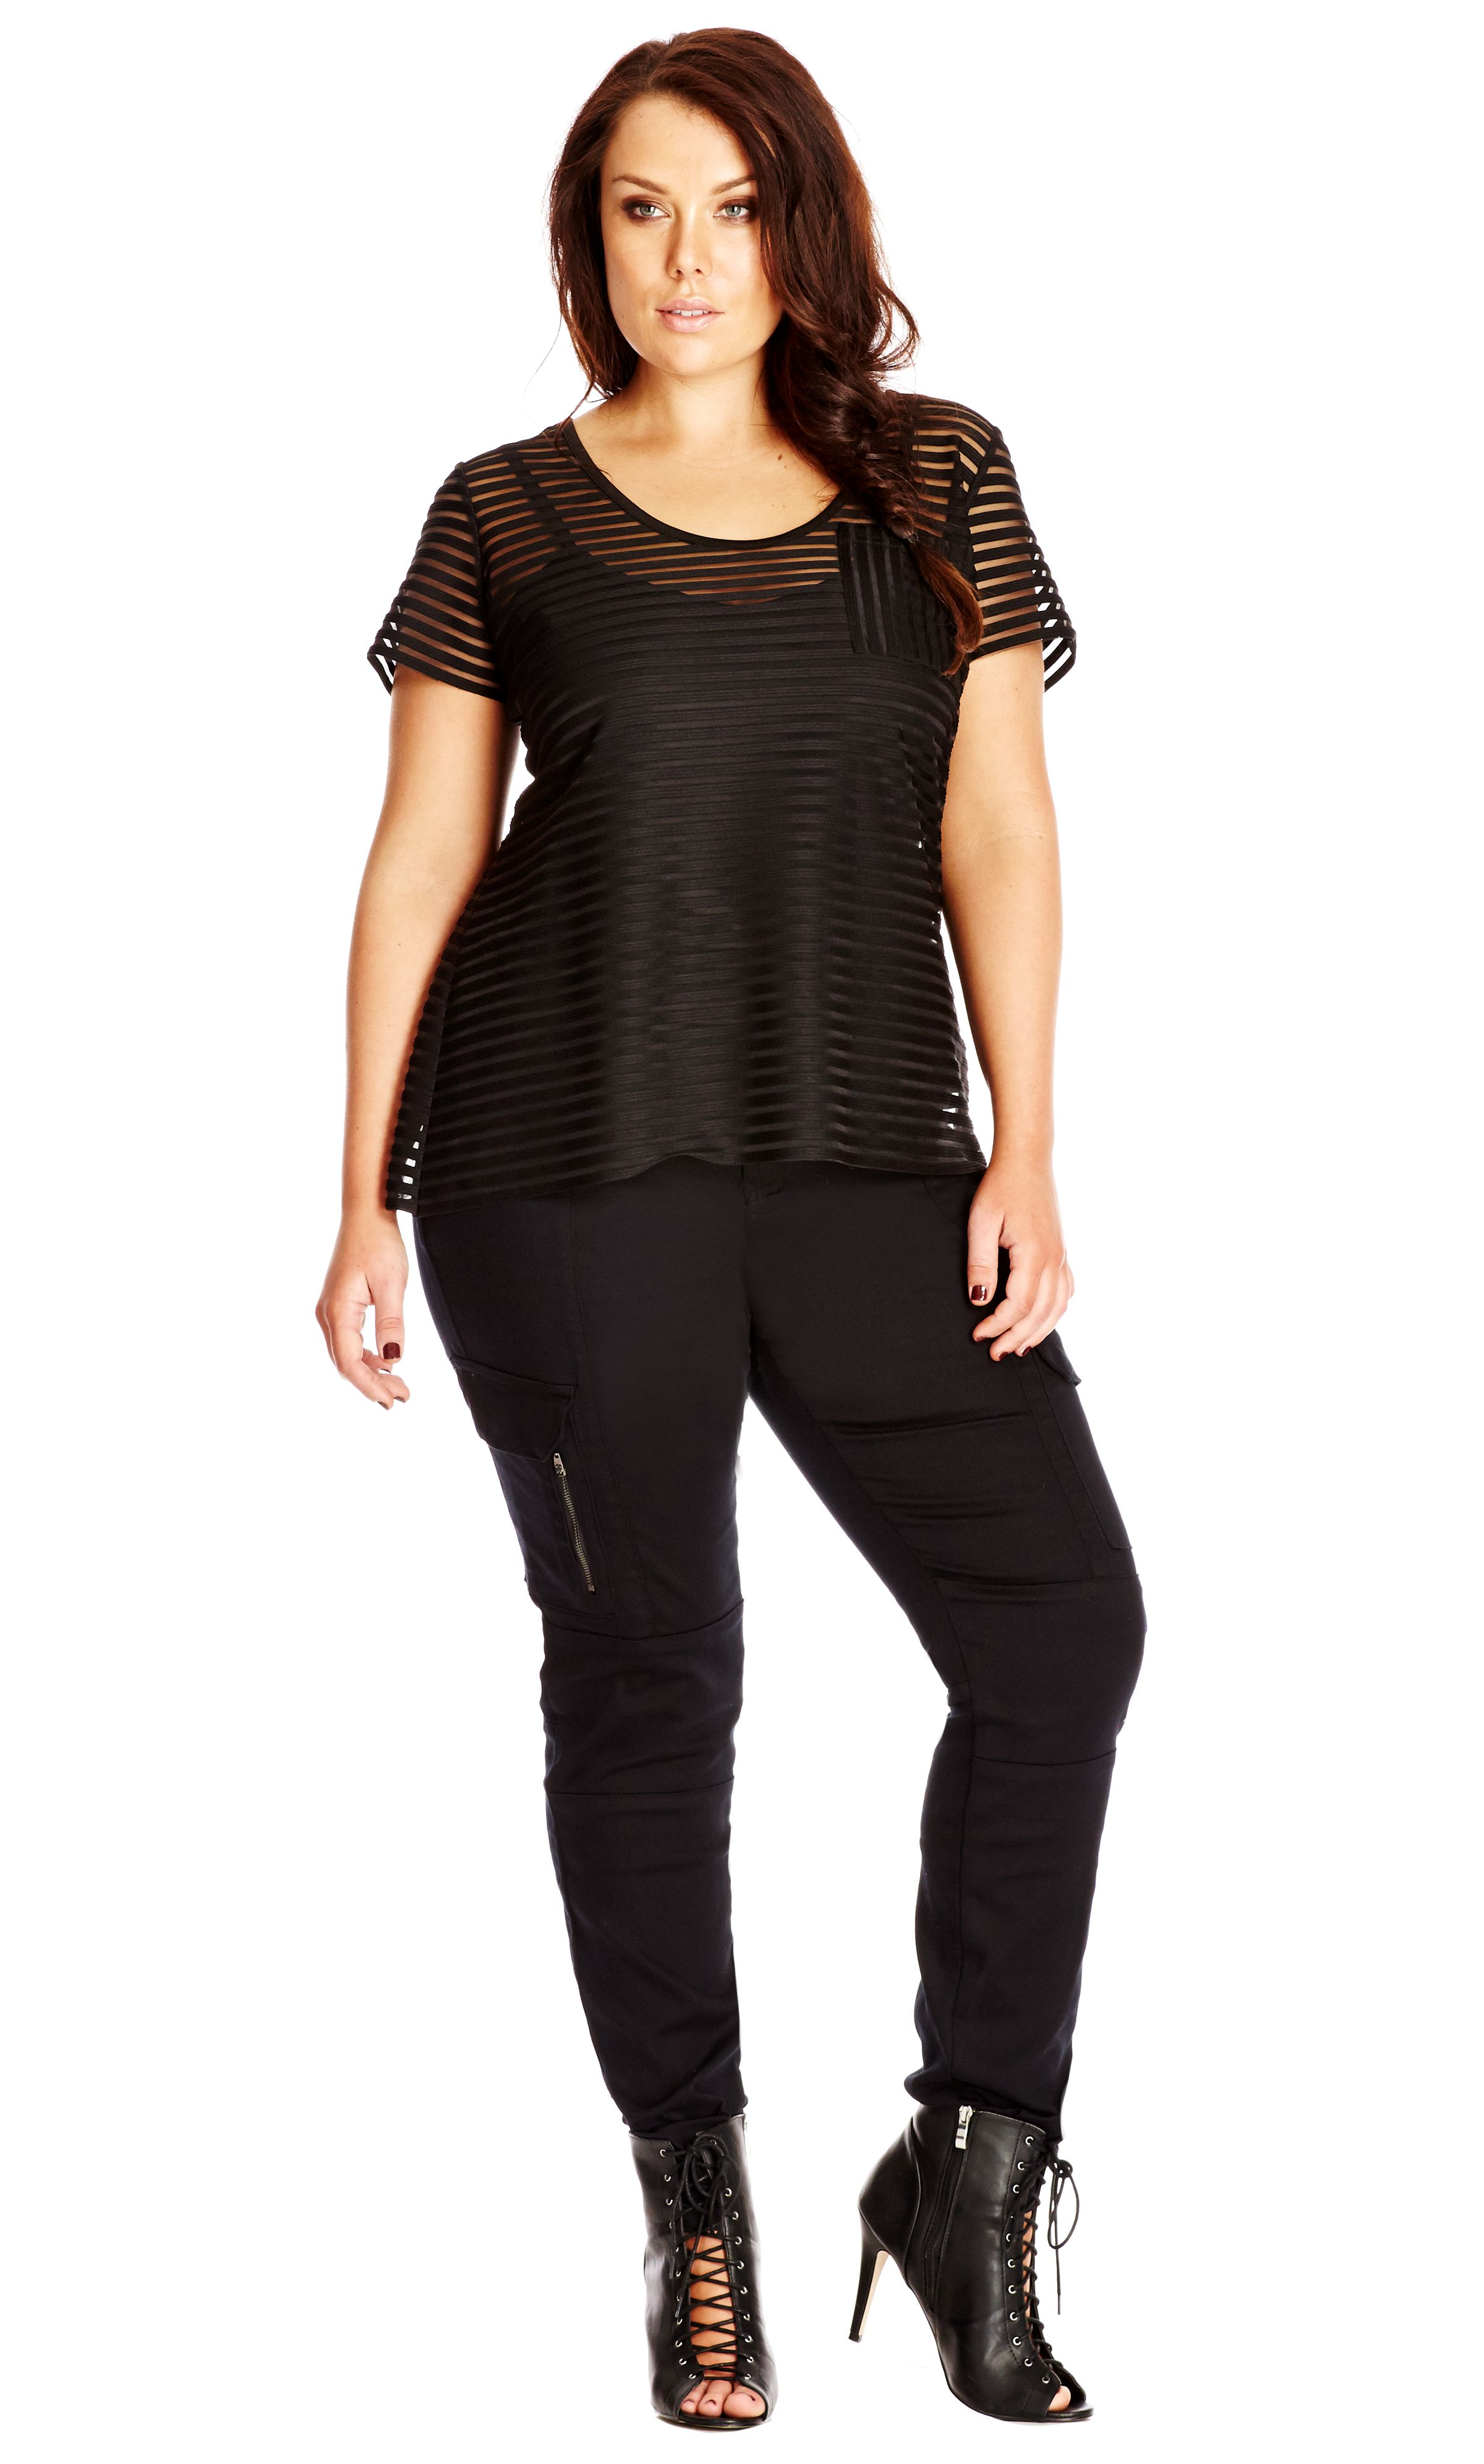 23cf34a2726 City Chic Black Cargo Pant - Women s Plus Size Fashion City Chic - City  Chic Your Leading Plus Size Fashion Destination  citychic  citychiconline  ...